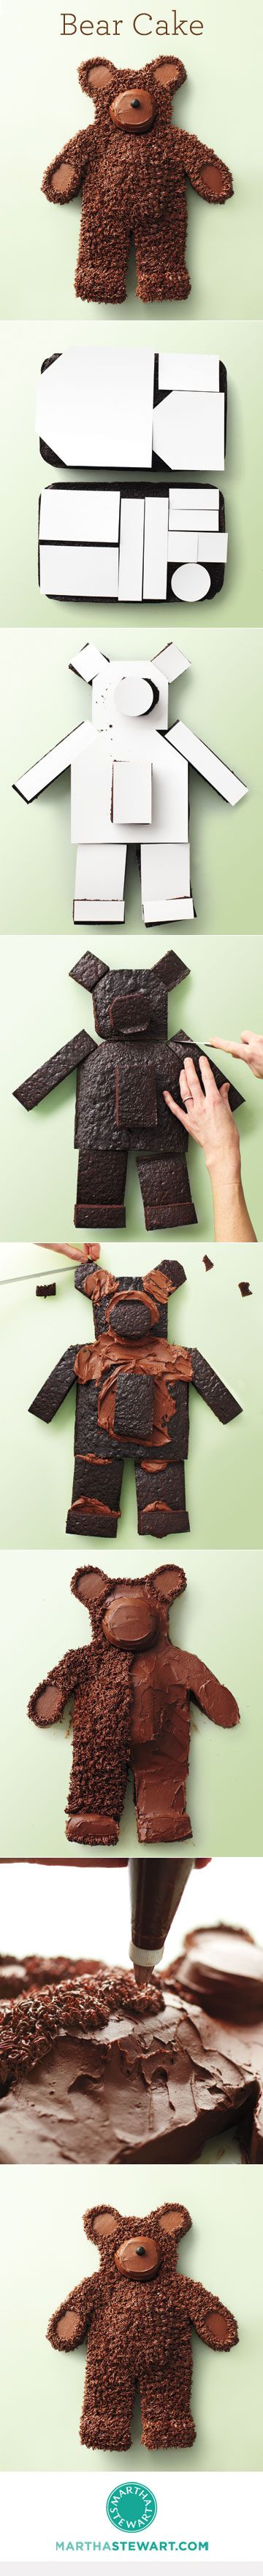 Just the thing for a teddy bear picnic: how to make a bear cake.